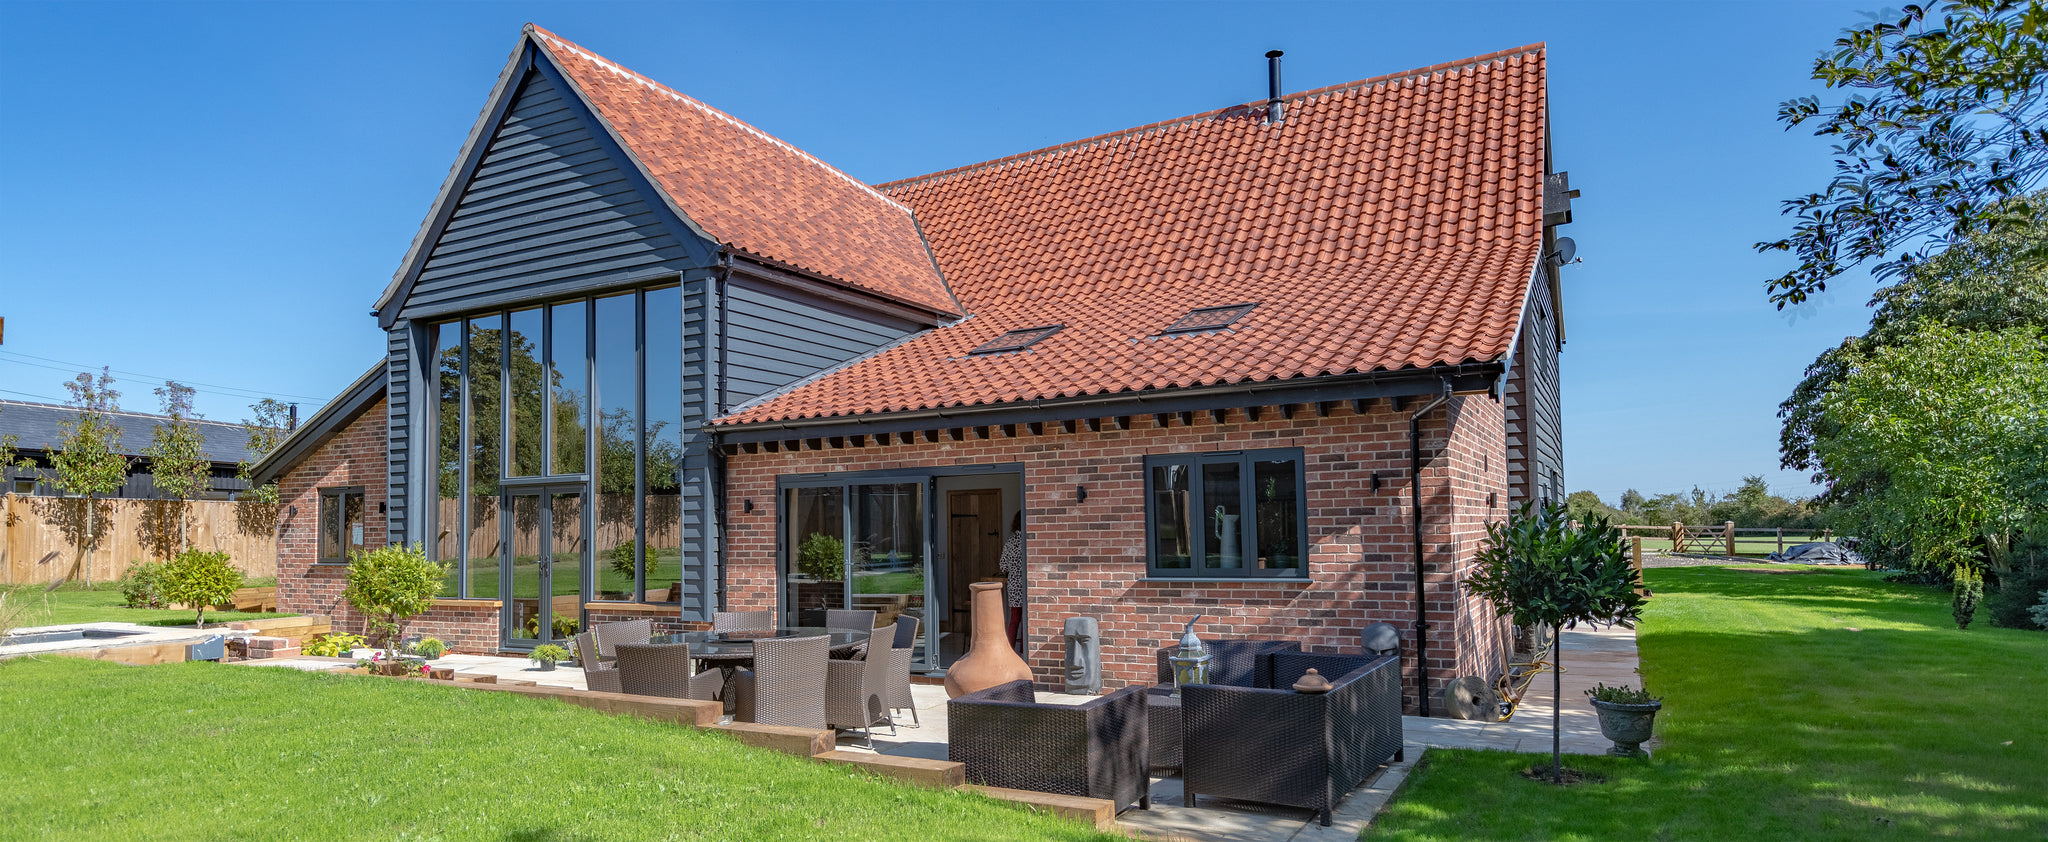 Suffolk Barn Conversion - Inspiring Home Design (Part I)